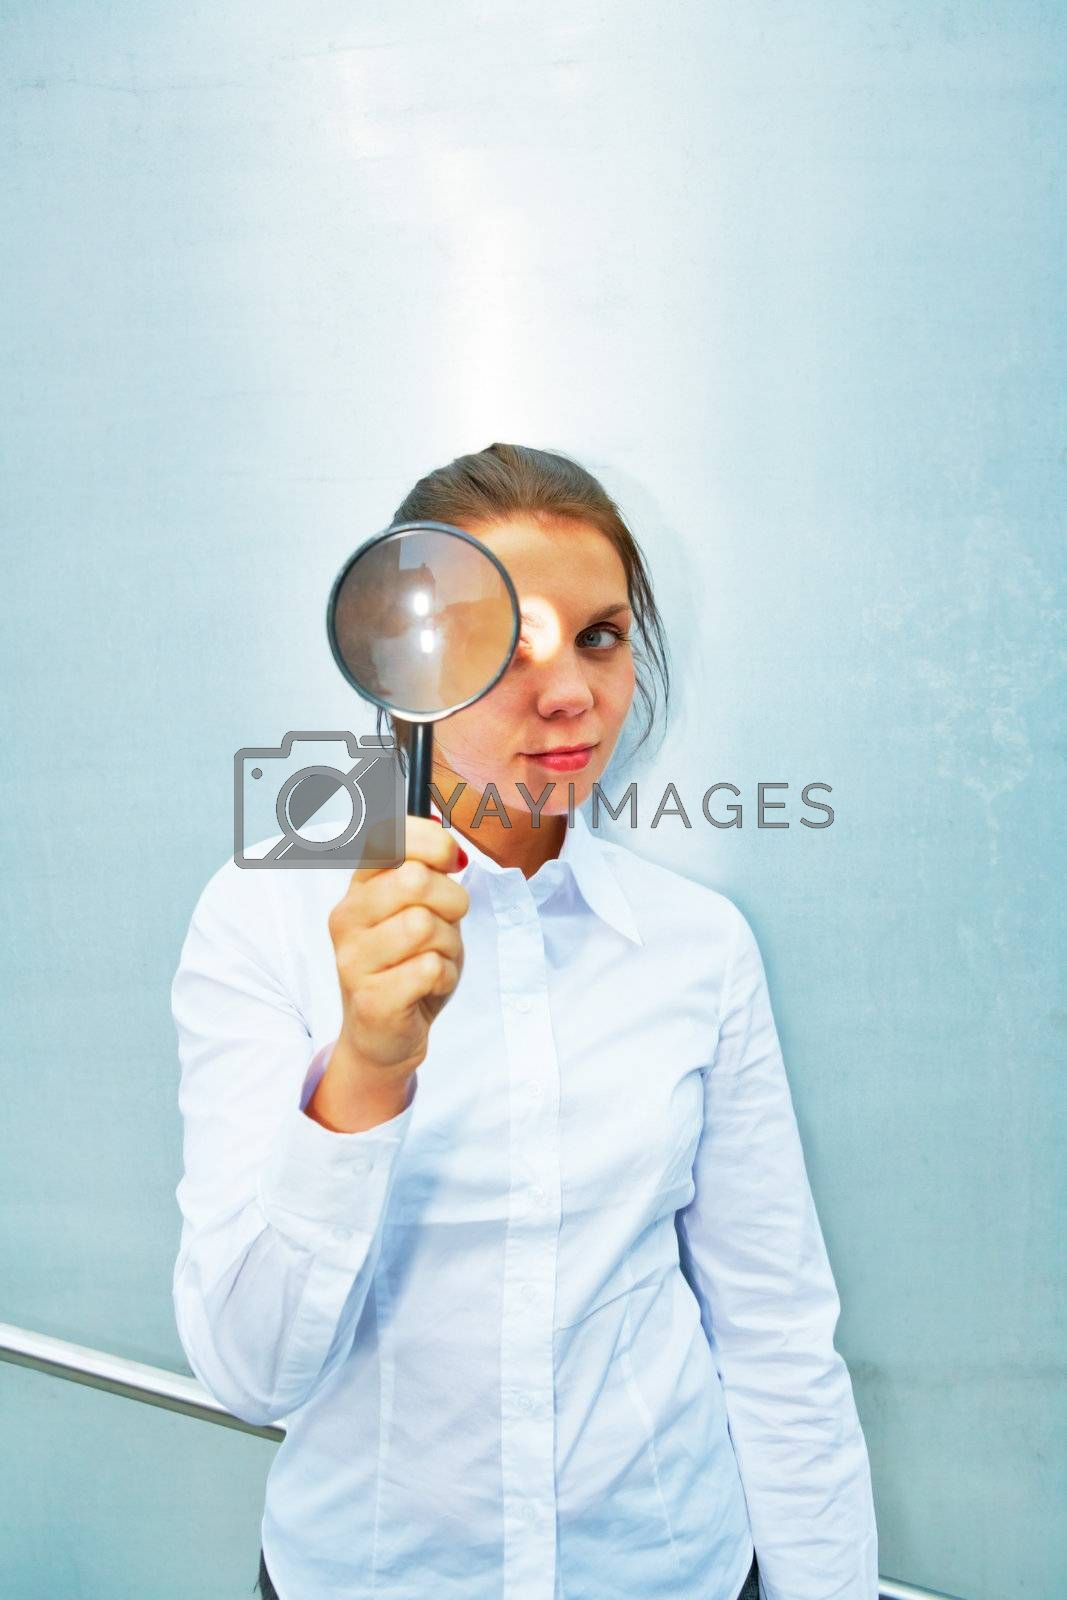 Royalty free image of Magnifying Glass by Luminis